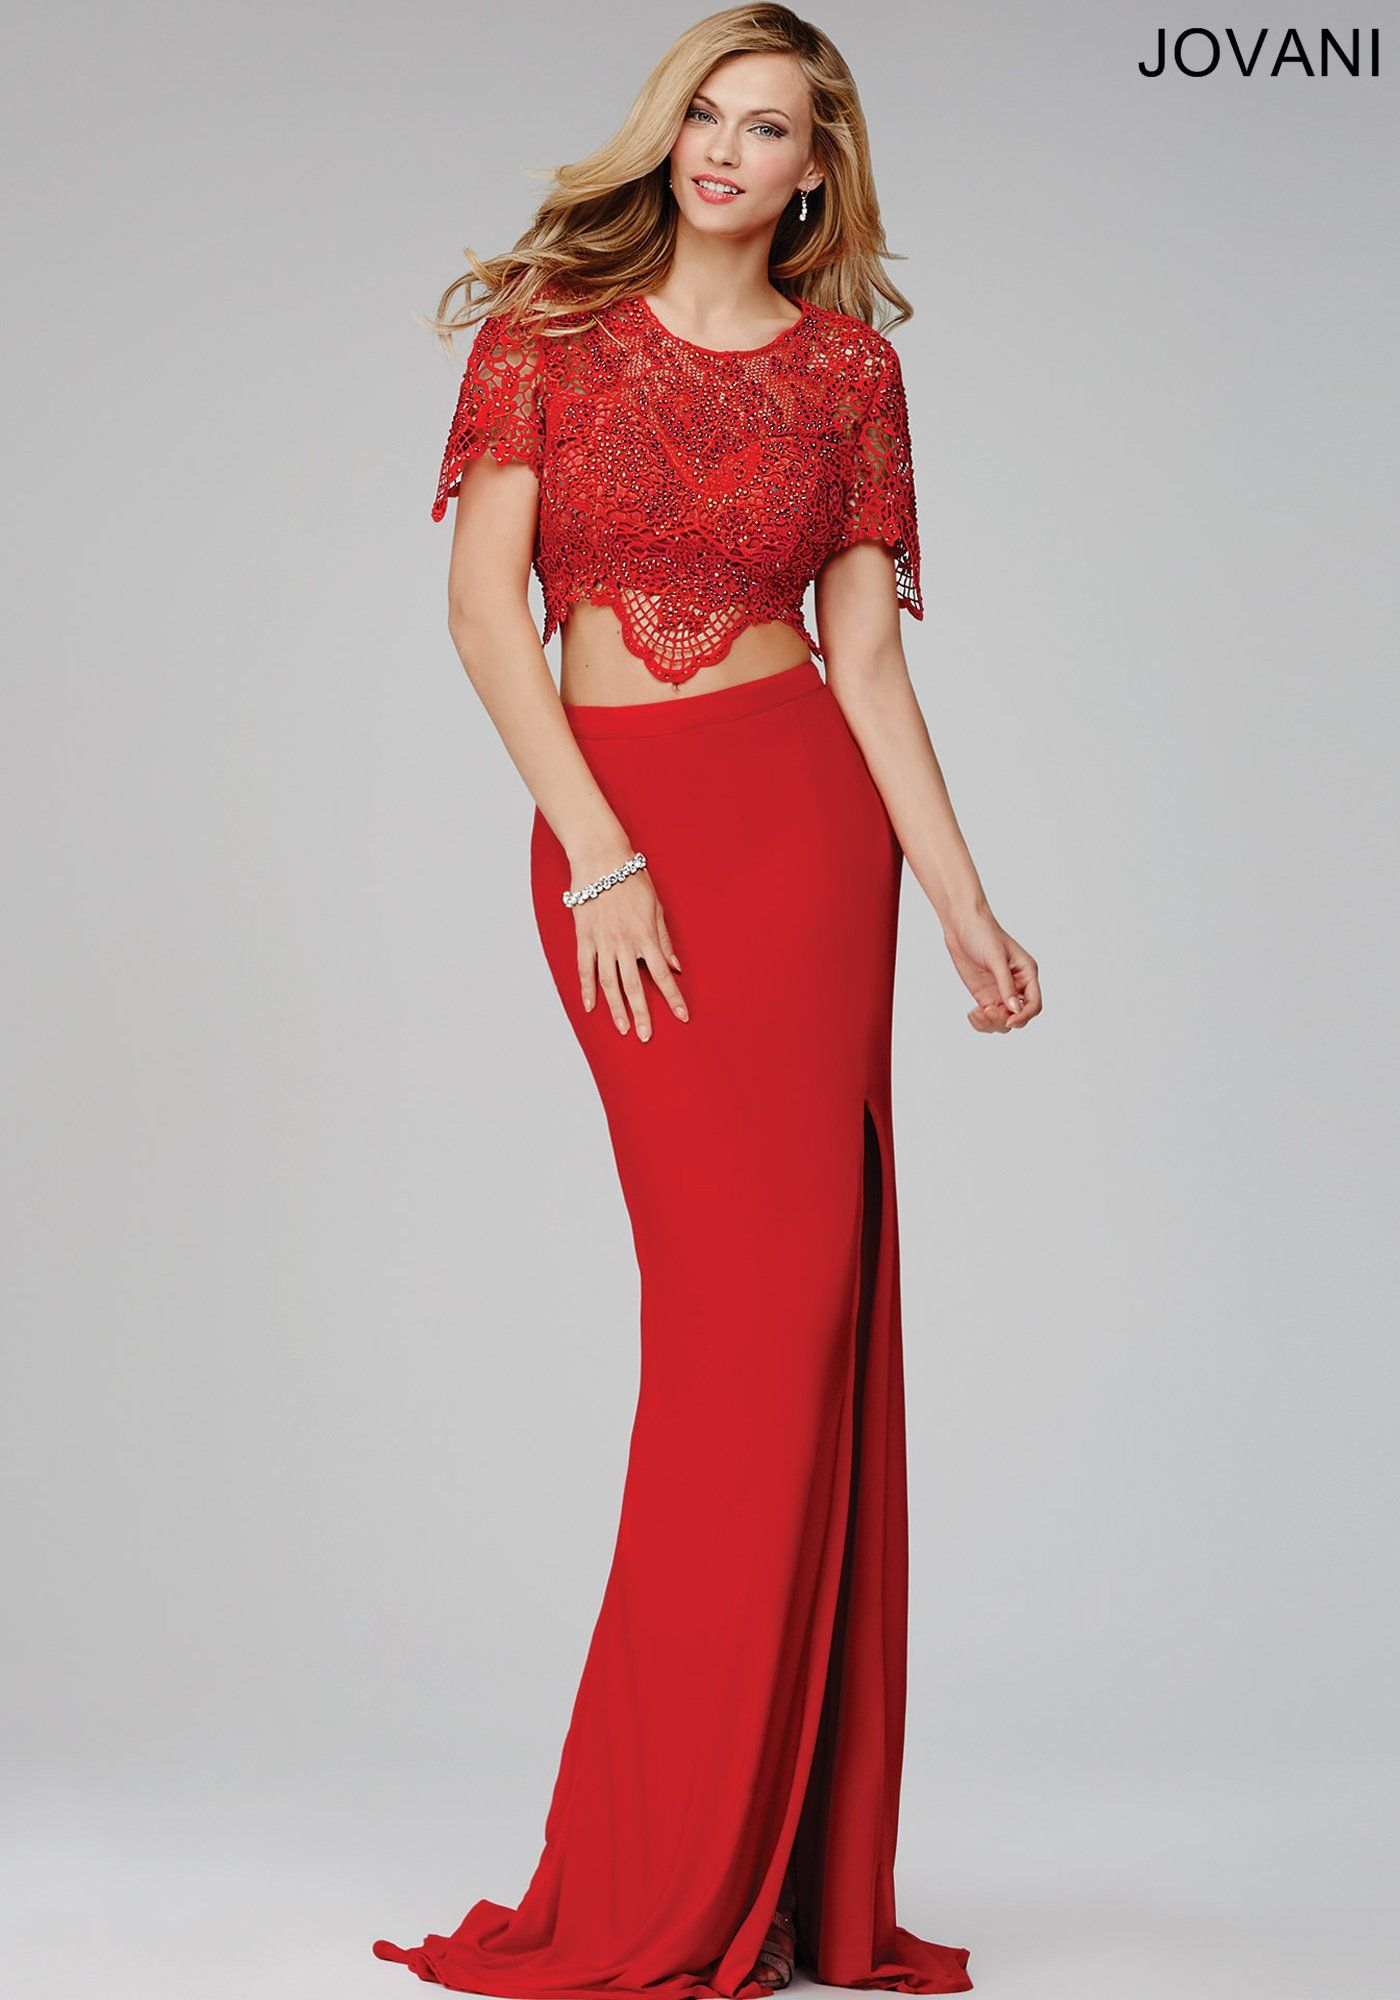 Red Two-Piece Prom Dress 28428   Cool stuff to buy   Pinterest ...